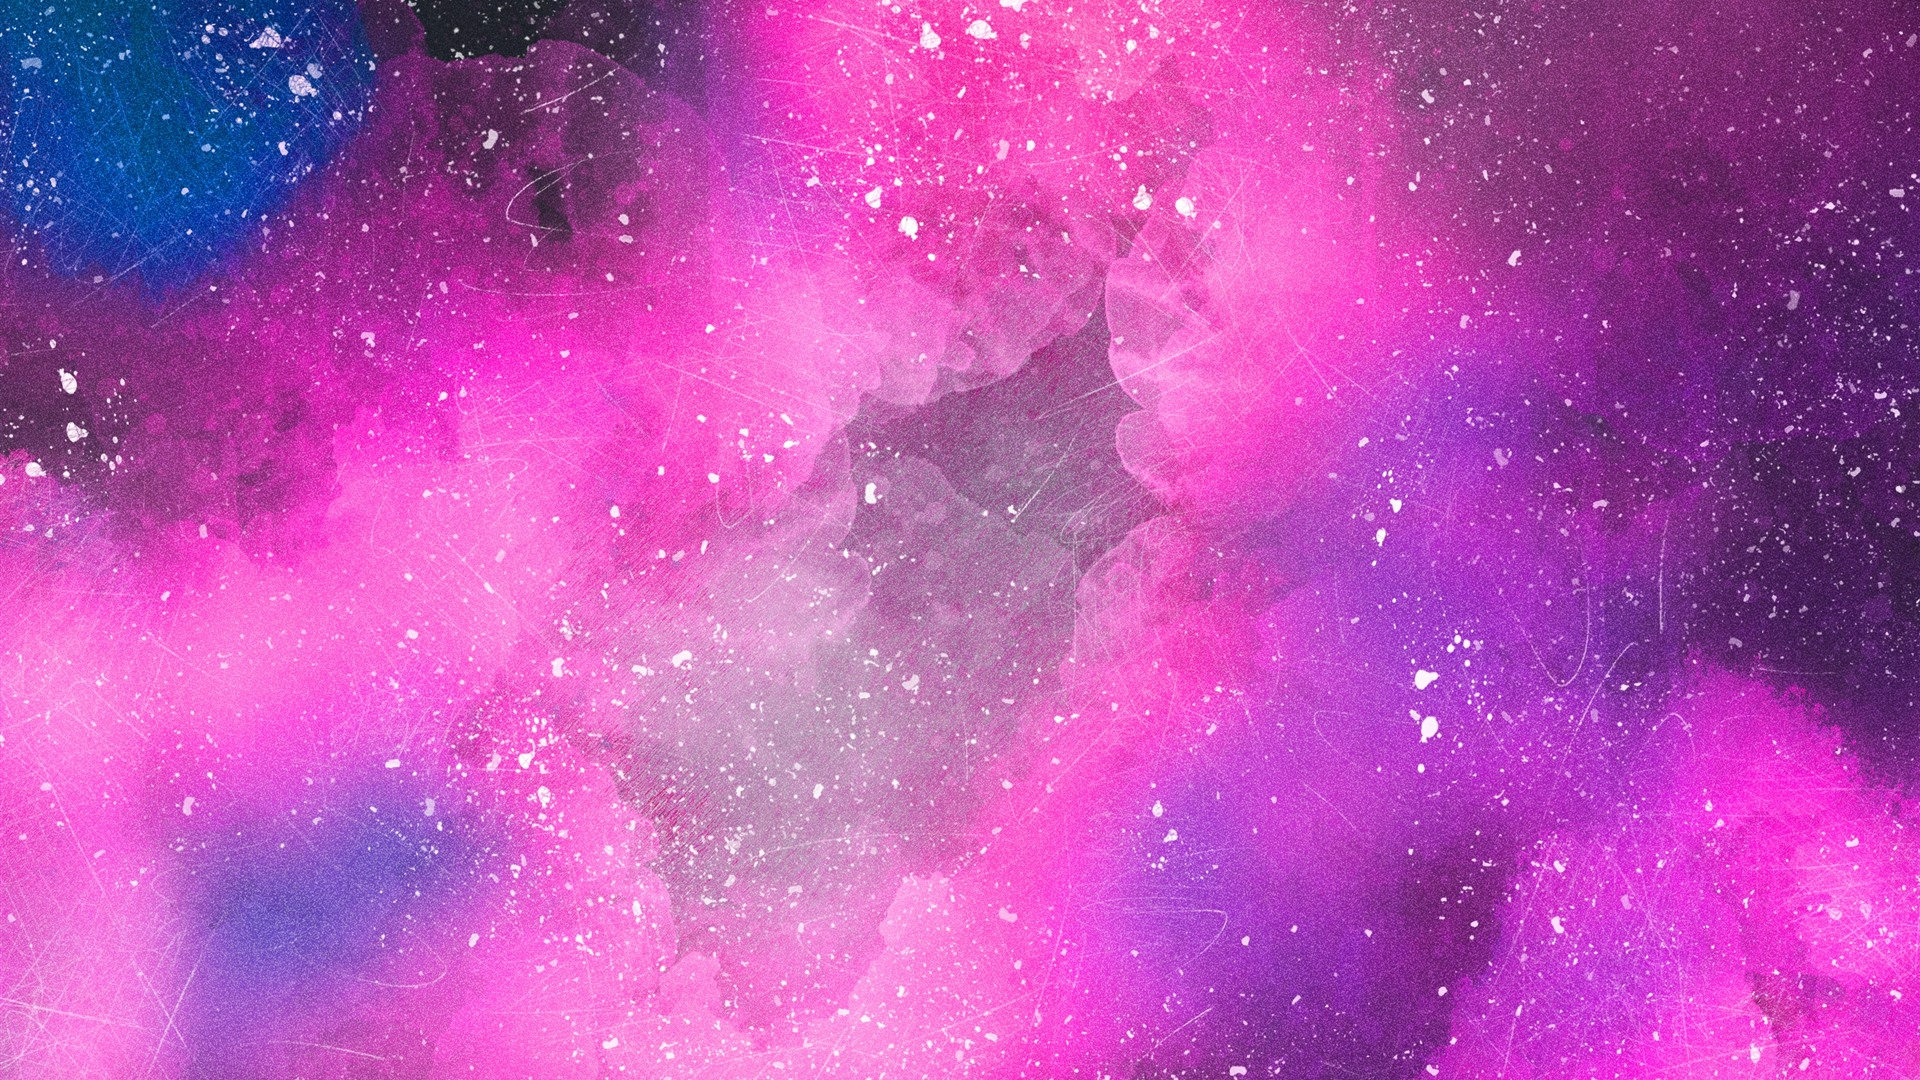 Wallpaper Pink space, clouds, abstract 2880x1800 HD ...